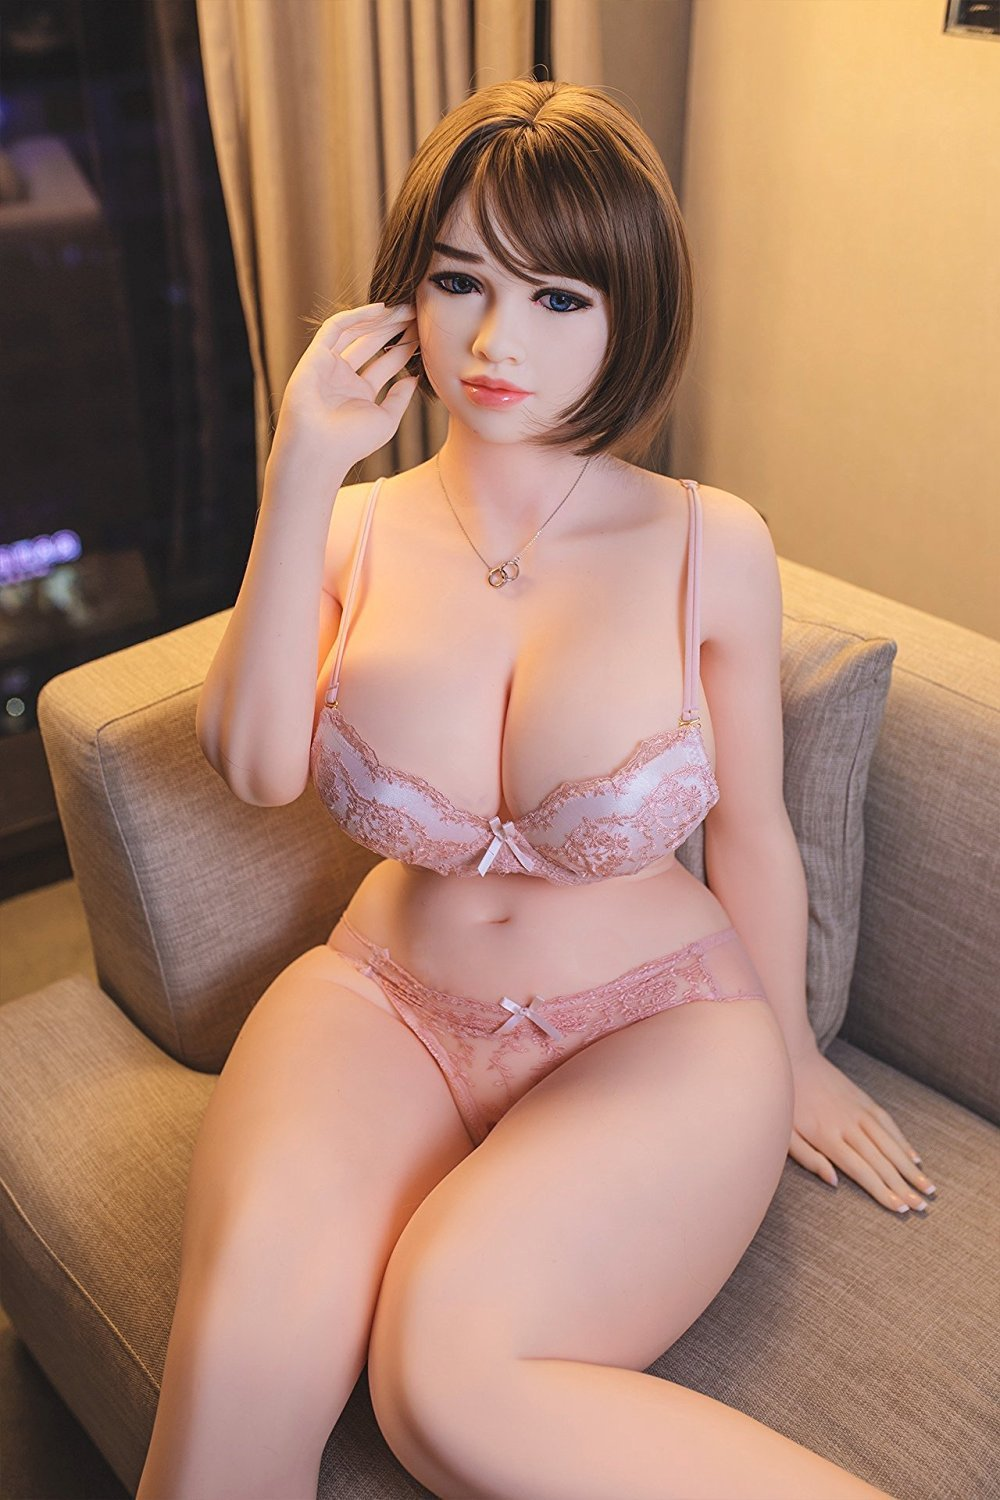 Big Ass Best Silicone Love Doll Tpe Chubby Real Doll -4002